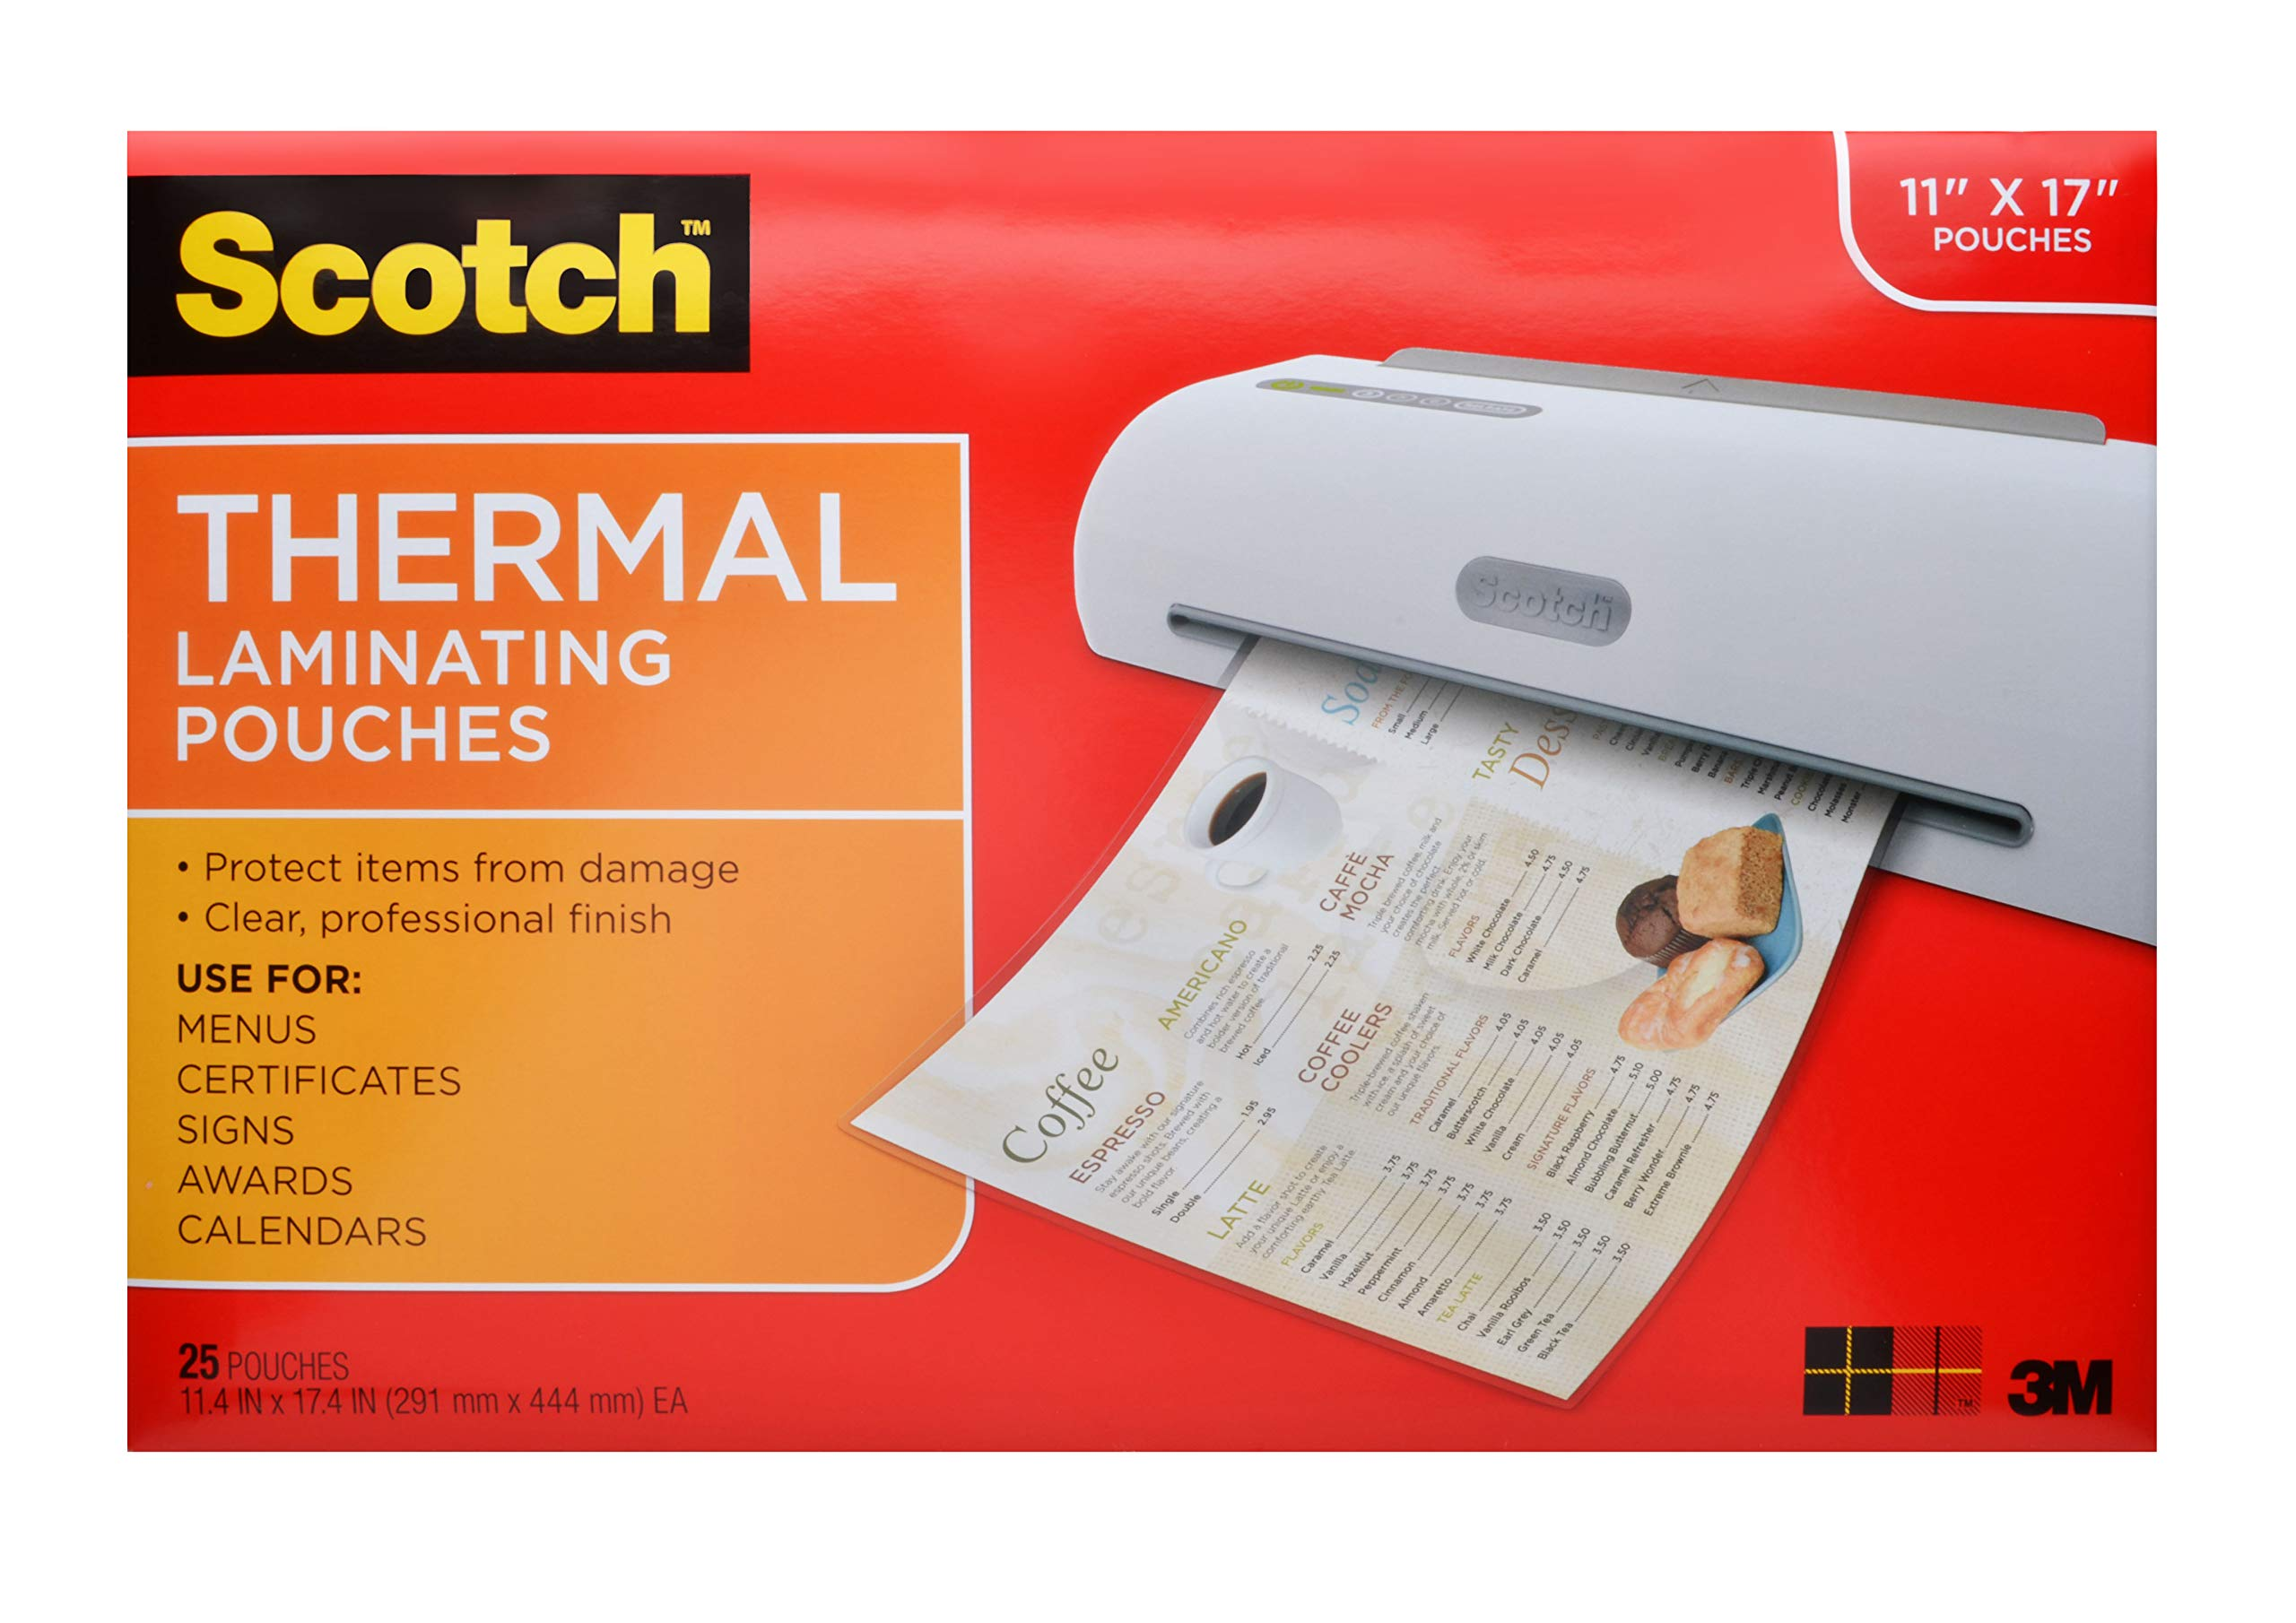 Scotch Thermal Laminating Pouches, 11.45 x 17.48-Inches, 25-Pouches (TP3856-25) by Scotch Brand